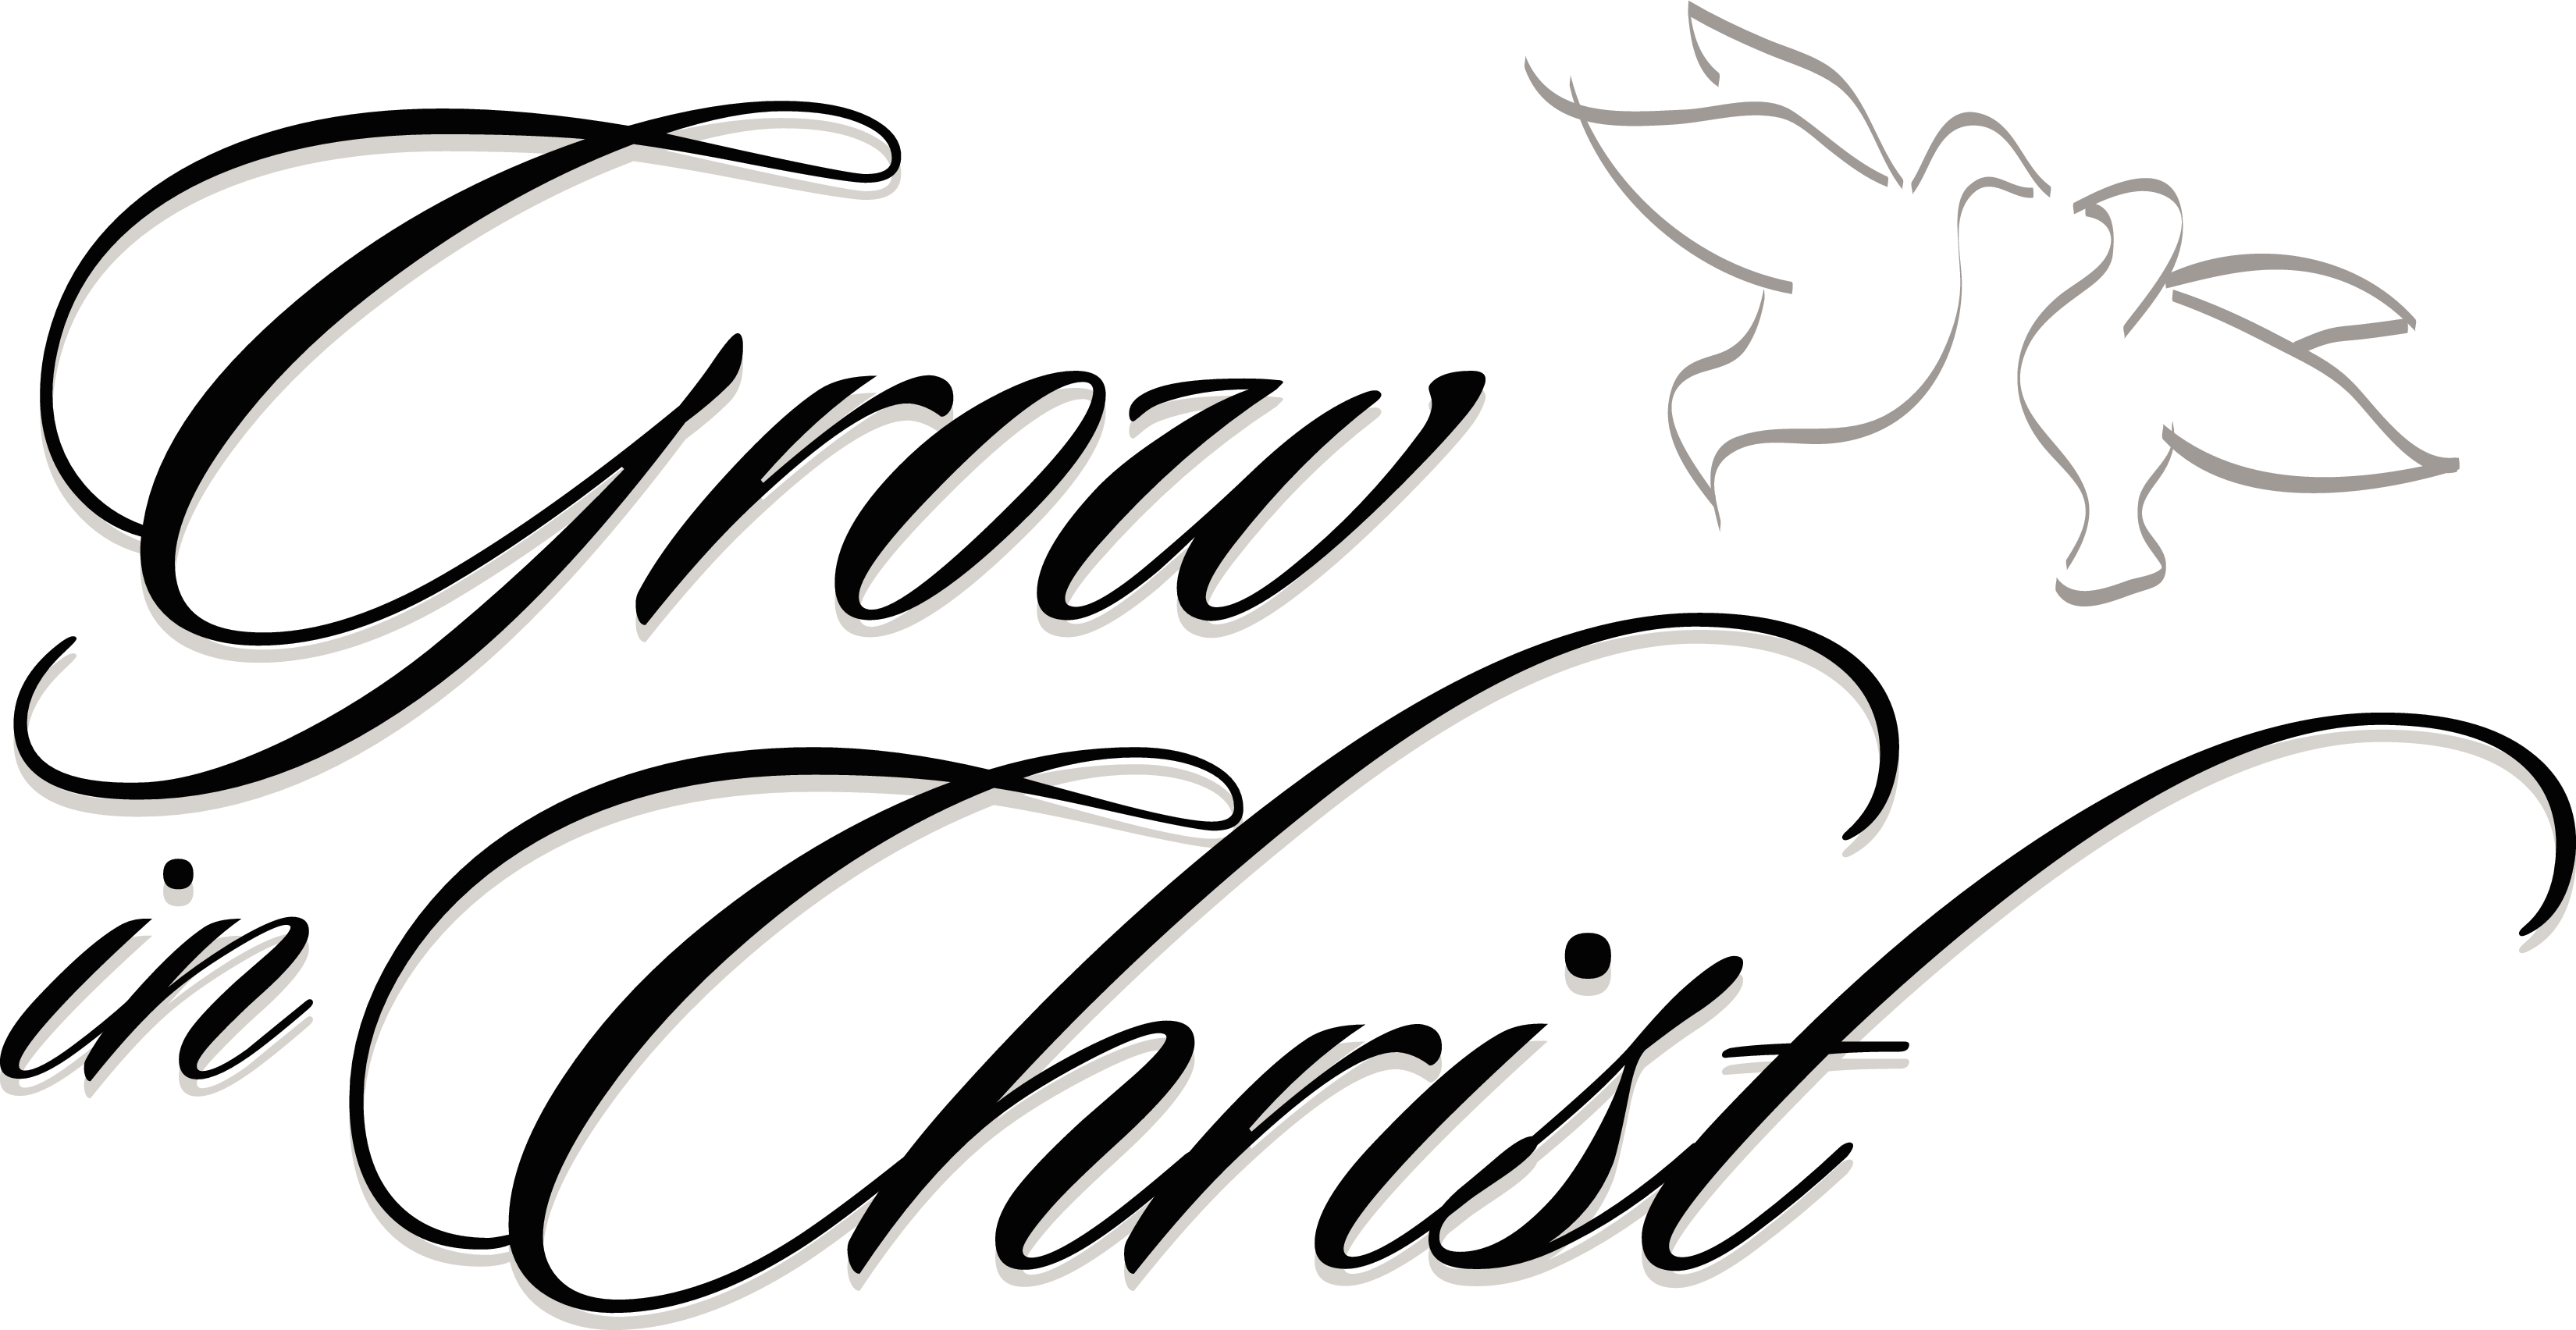 Christian cliparts free png free stock Biblical Clipart | Free download best Biblical Clipart on ClipArtMag.com png free stock